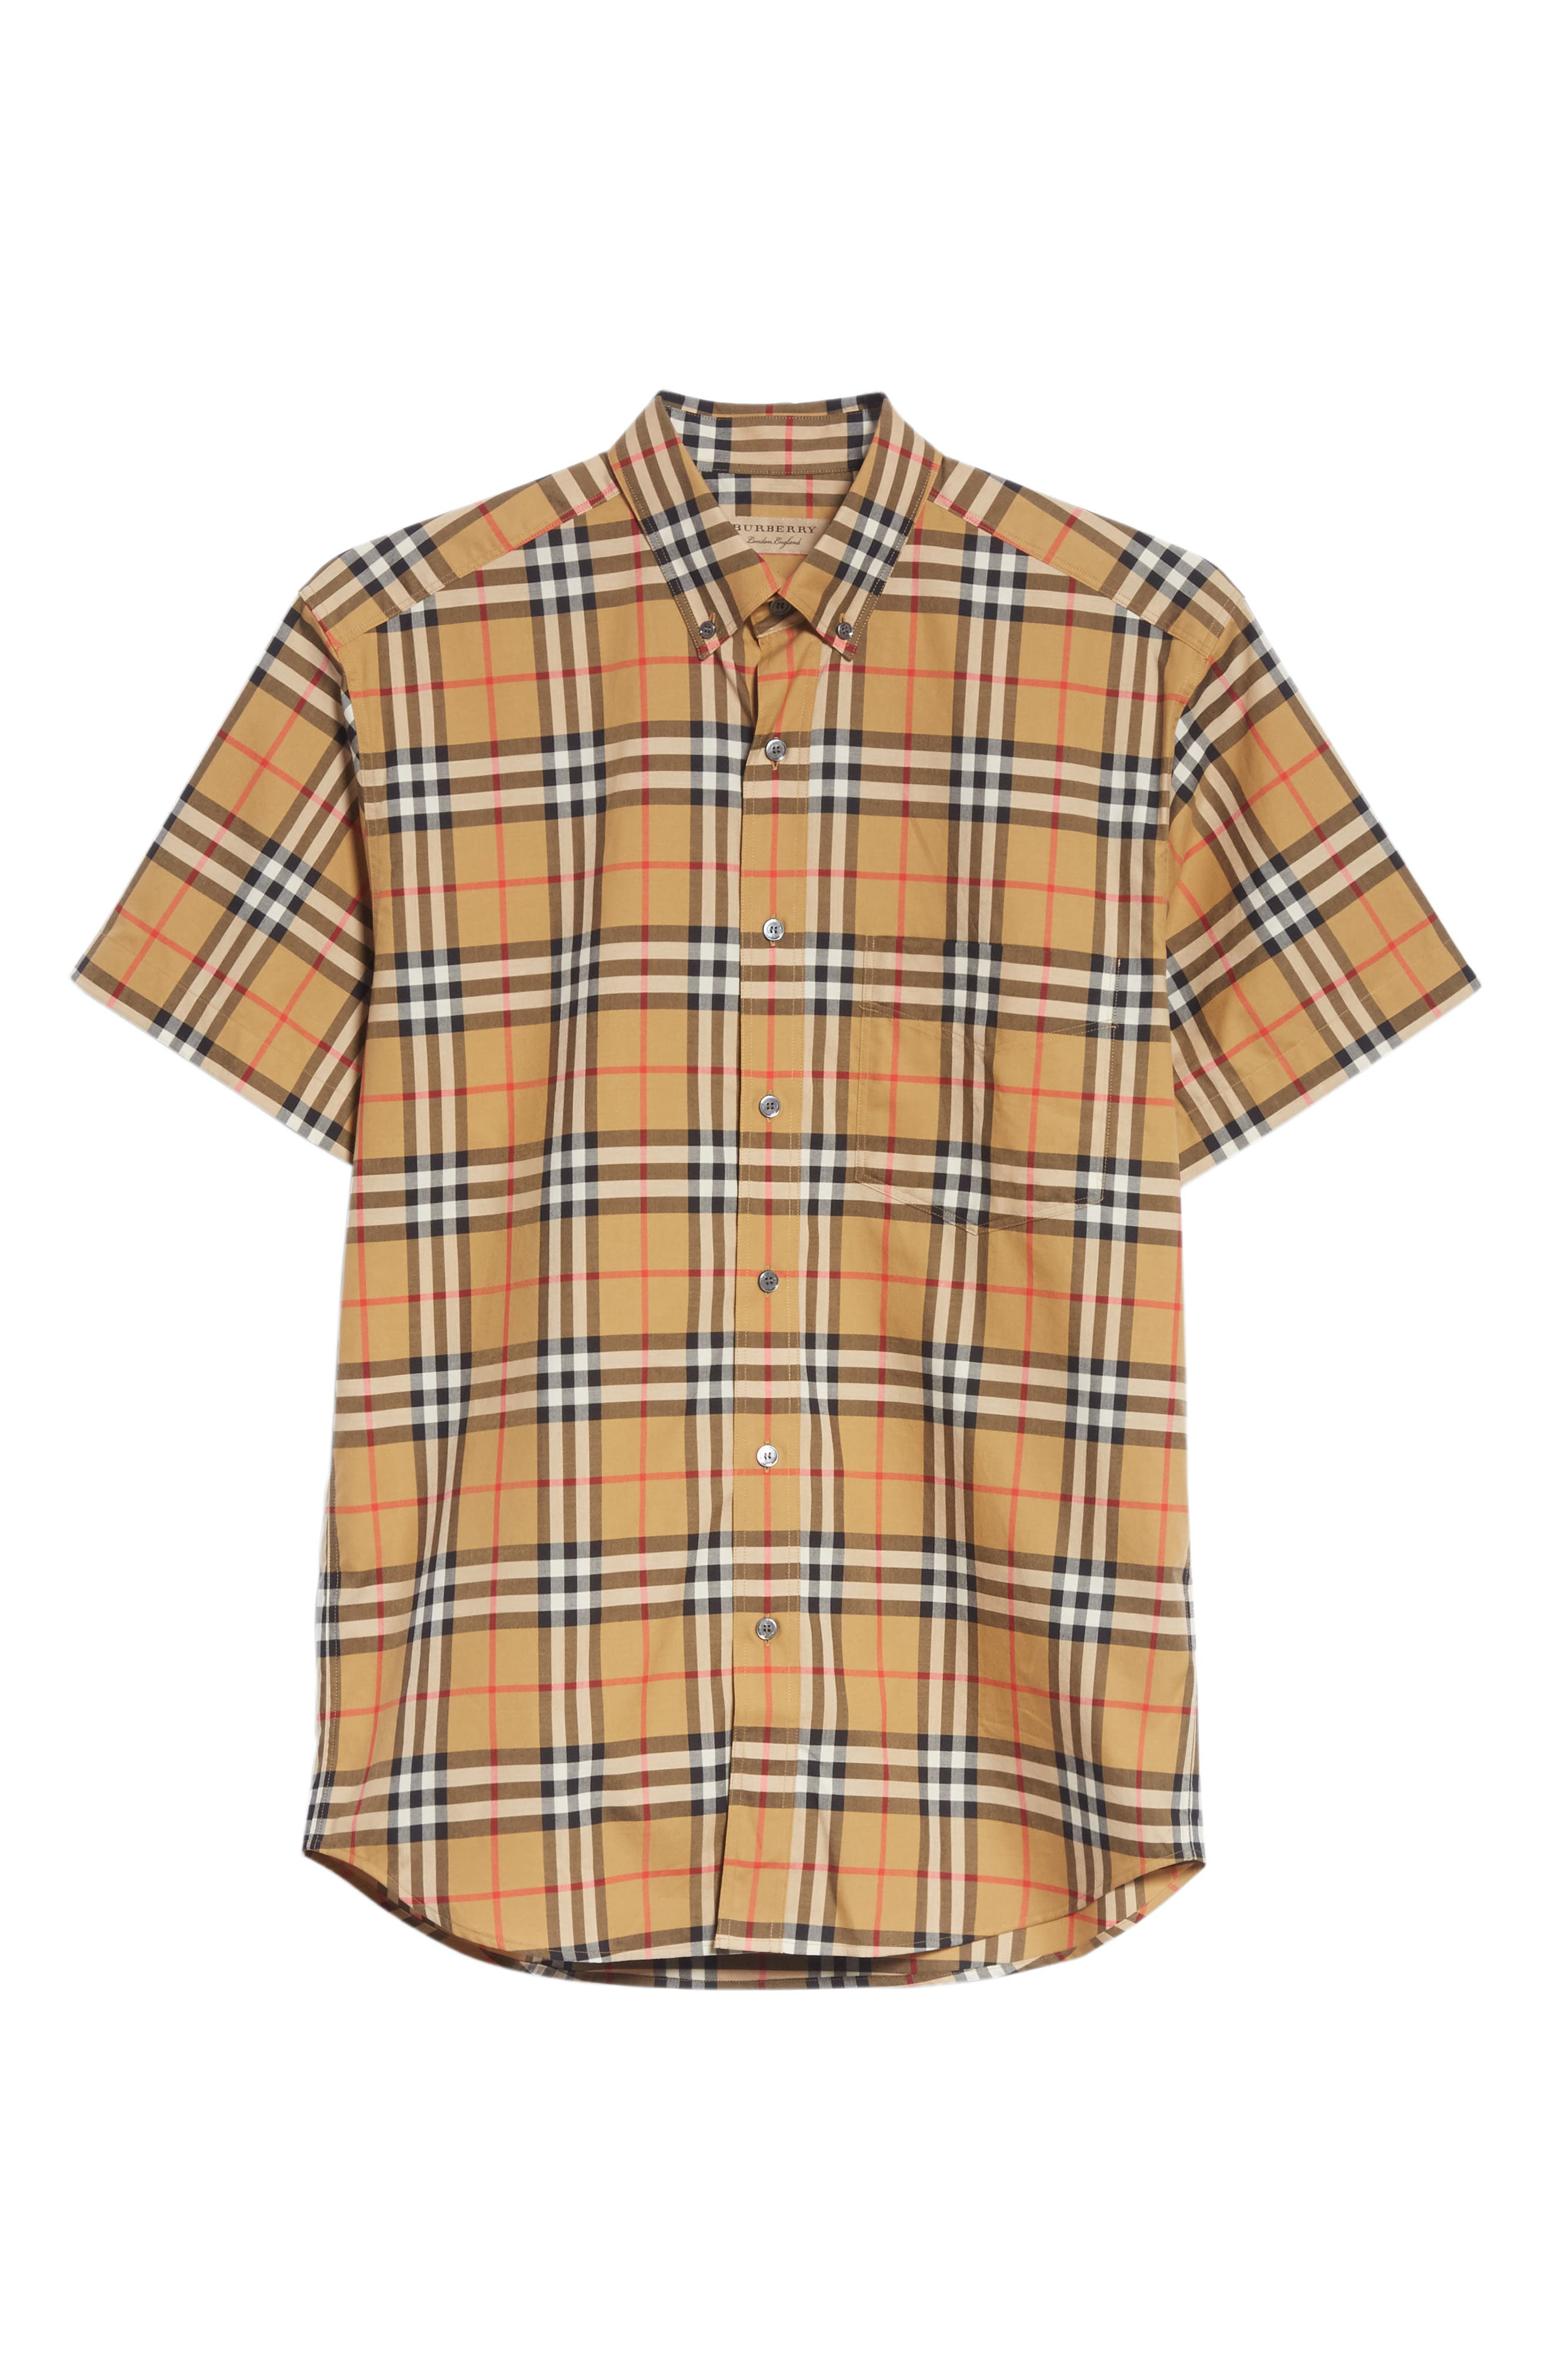 Jameson Woven Check Sport Shirt,                             Alternate thumbnail 6, color,                             ANTIQUE YELLOW